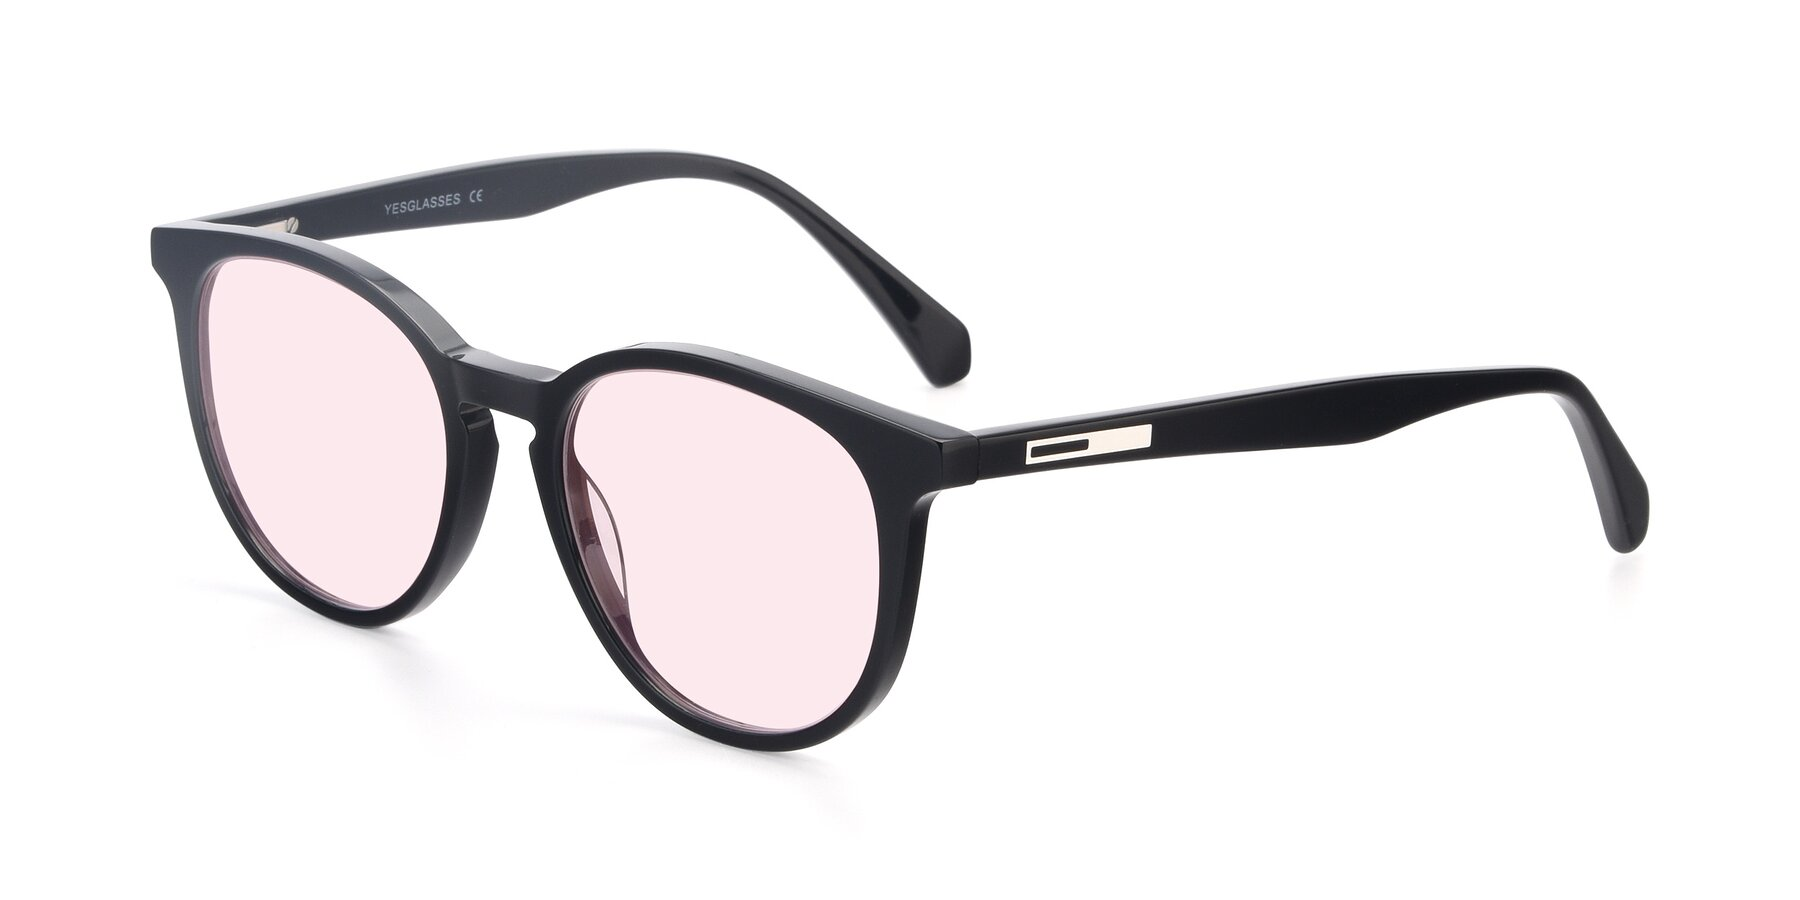 Angle of 17721 in Black with Light Pink Tinted Lenses